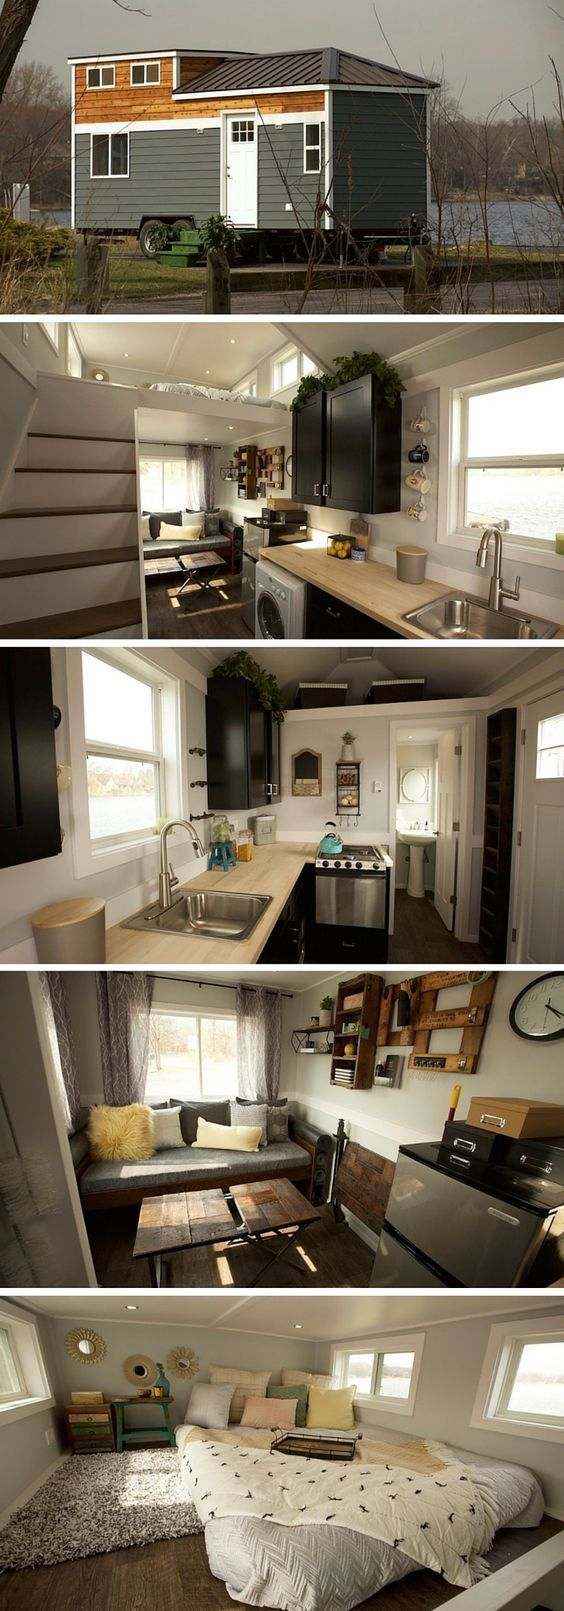 Pin by cindy stone neally on small houses pinterest for Kleines mobiles haus